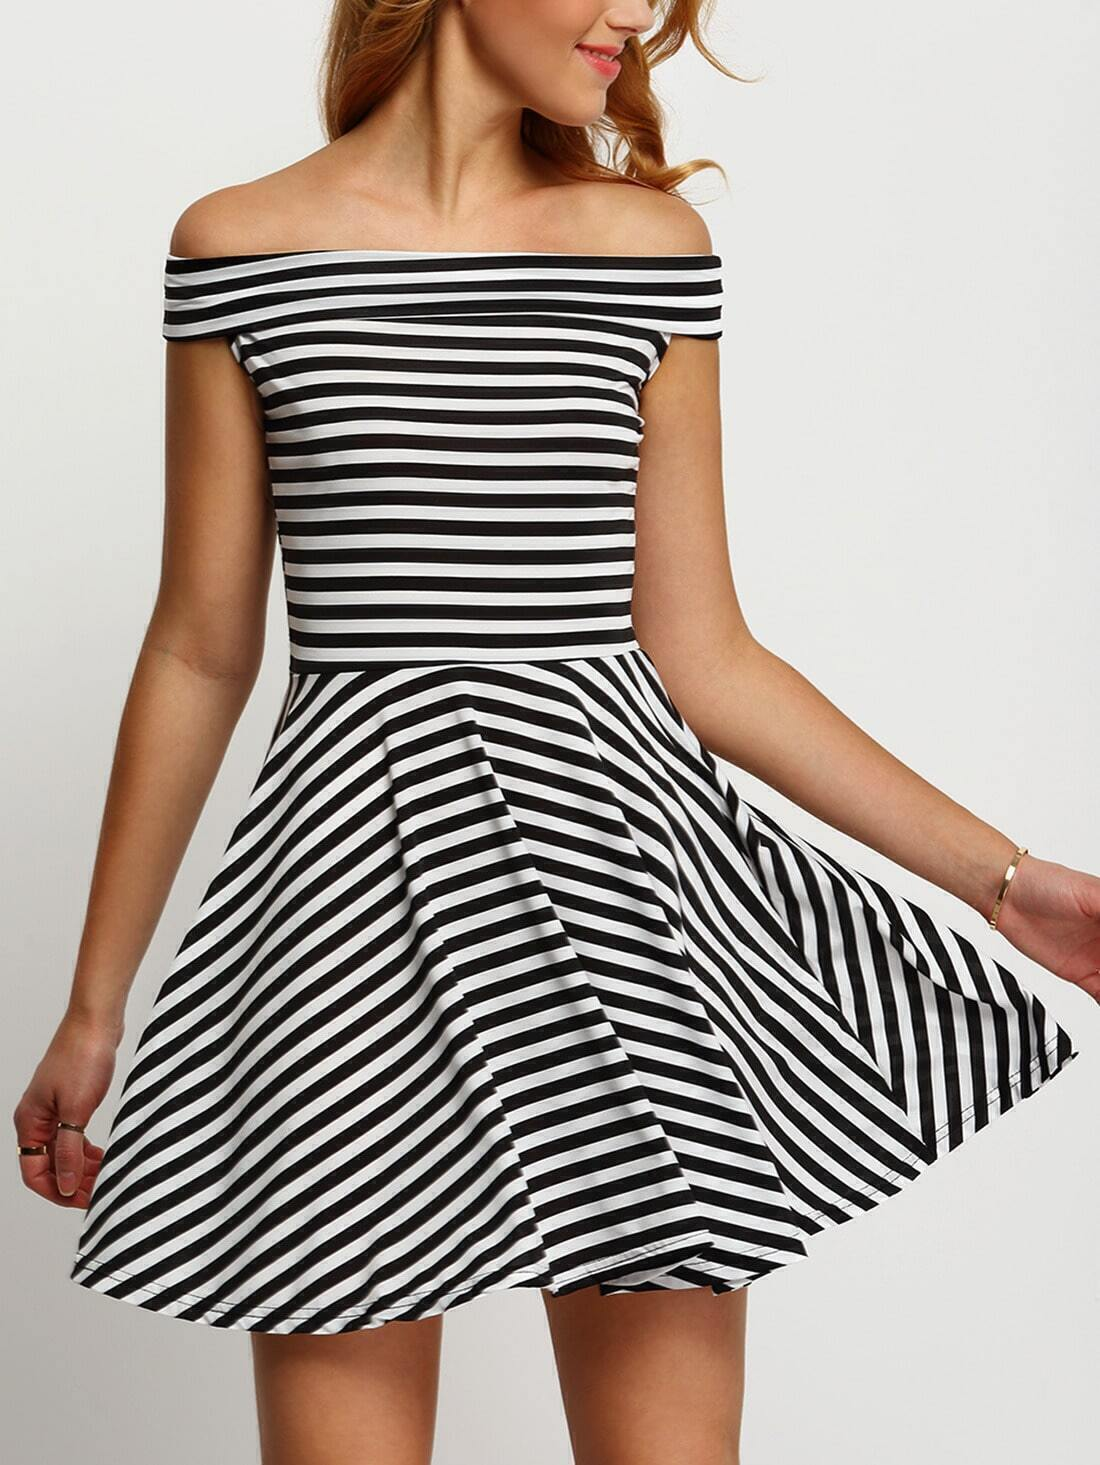 7bbed10553383 Black White Boat Neck Striped Flare Dress EmmaCloth-Women Fast ...